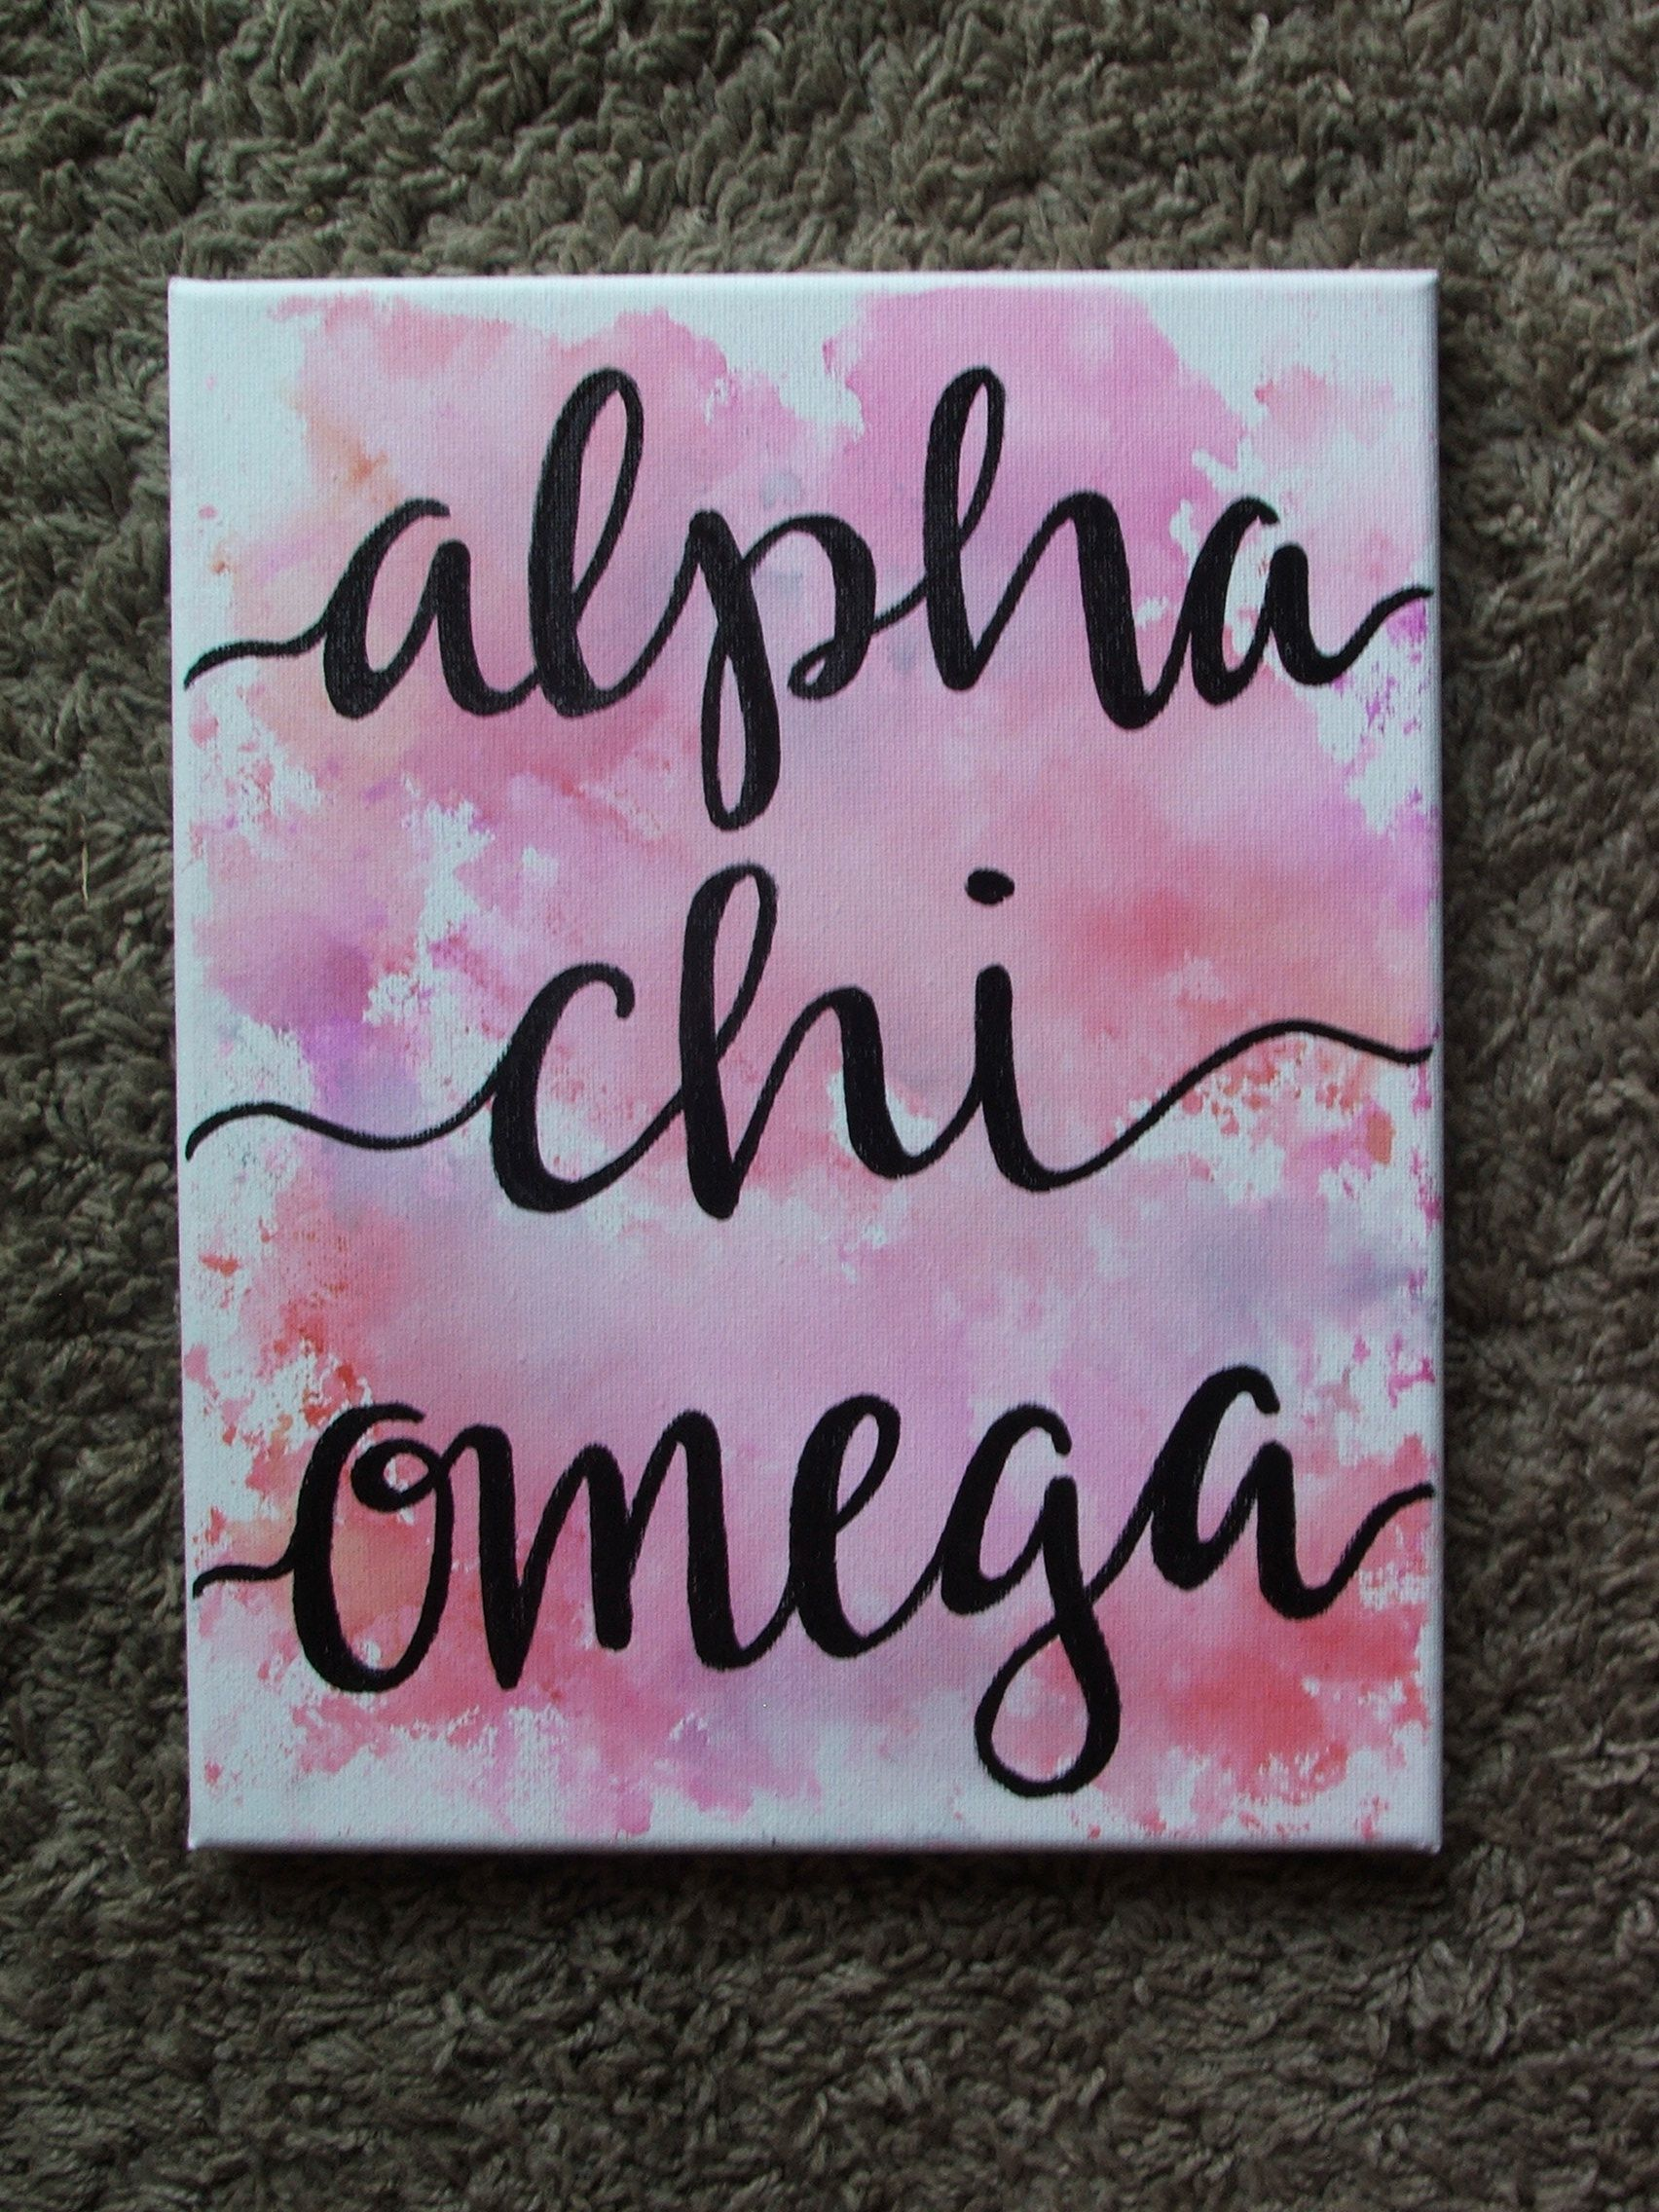 watercolor sorority canvas -- AXO -- Alpha chi omega Can be customized with any colors and any sorority! Check out my IG, FB, or etsy (@craftsbySM) to place an order! #biglittlecanvas